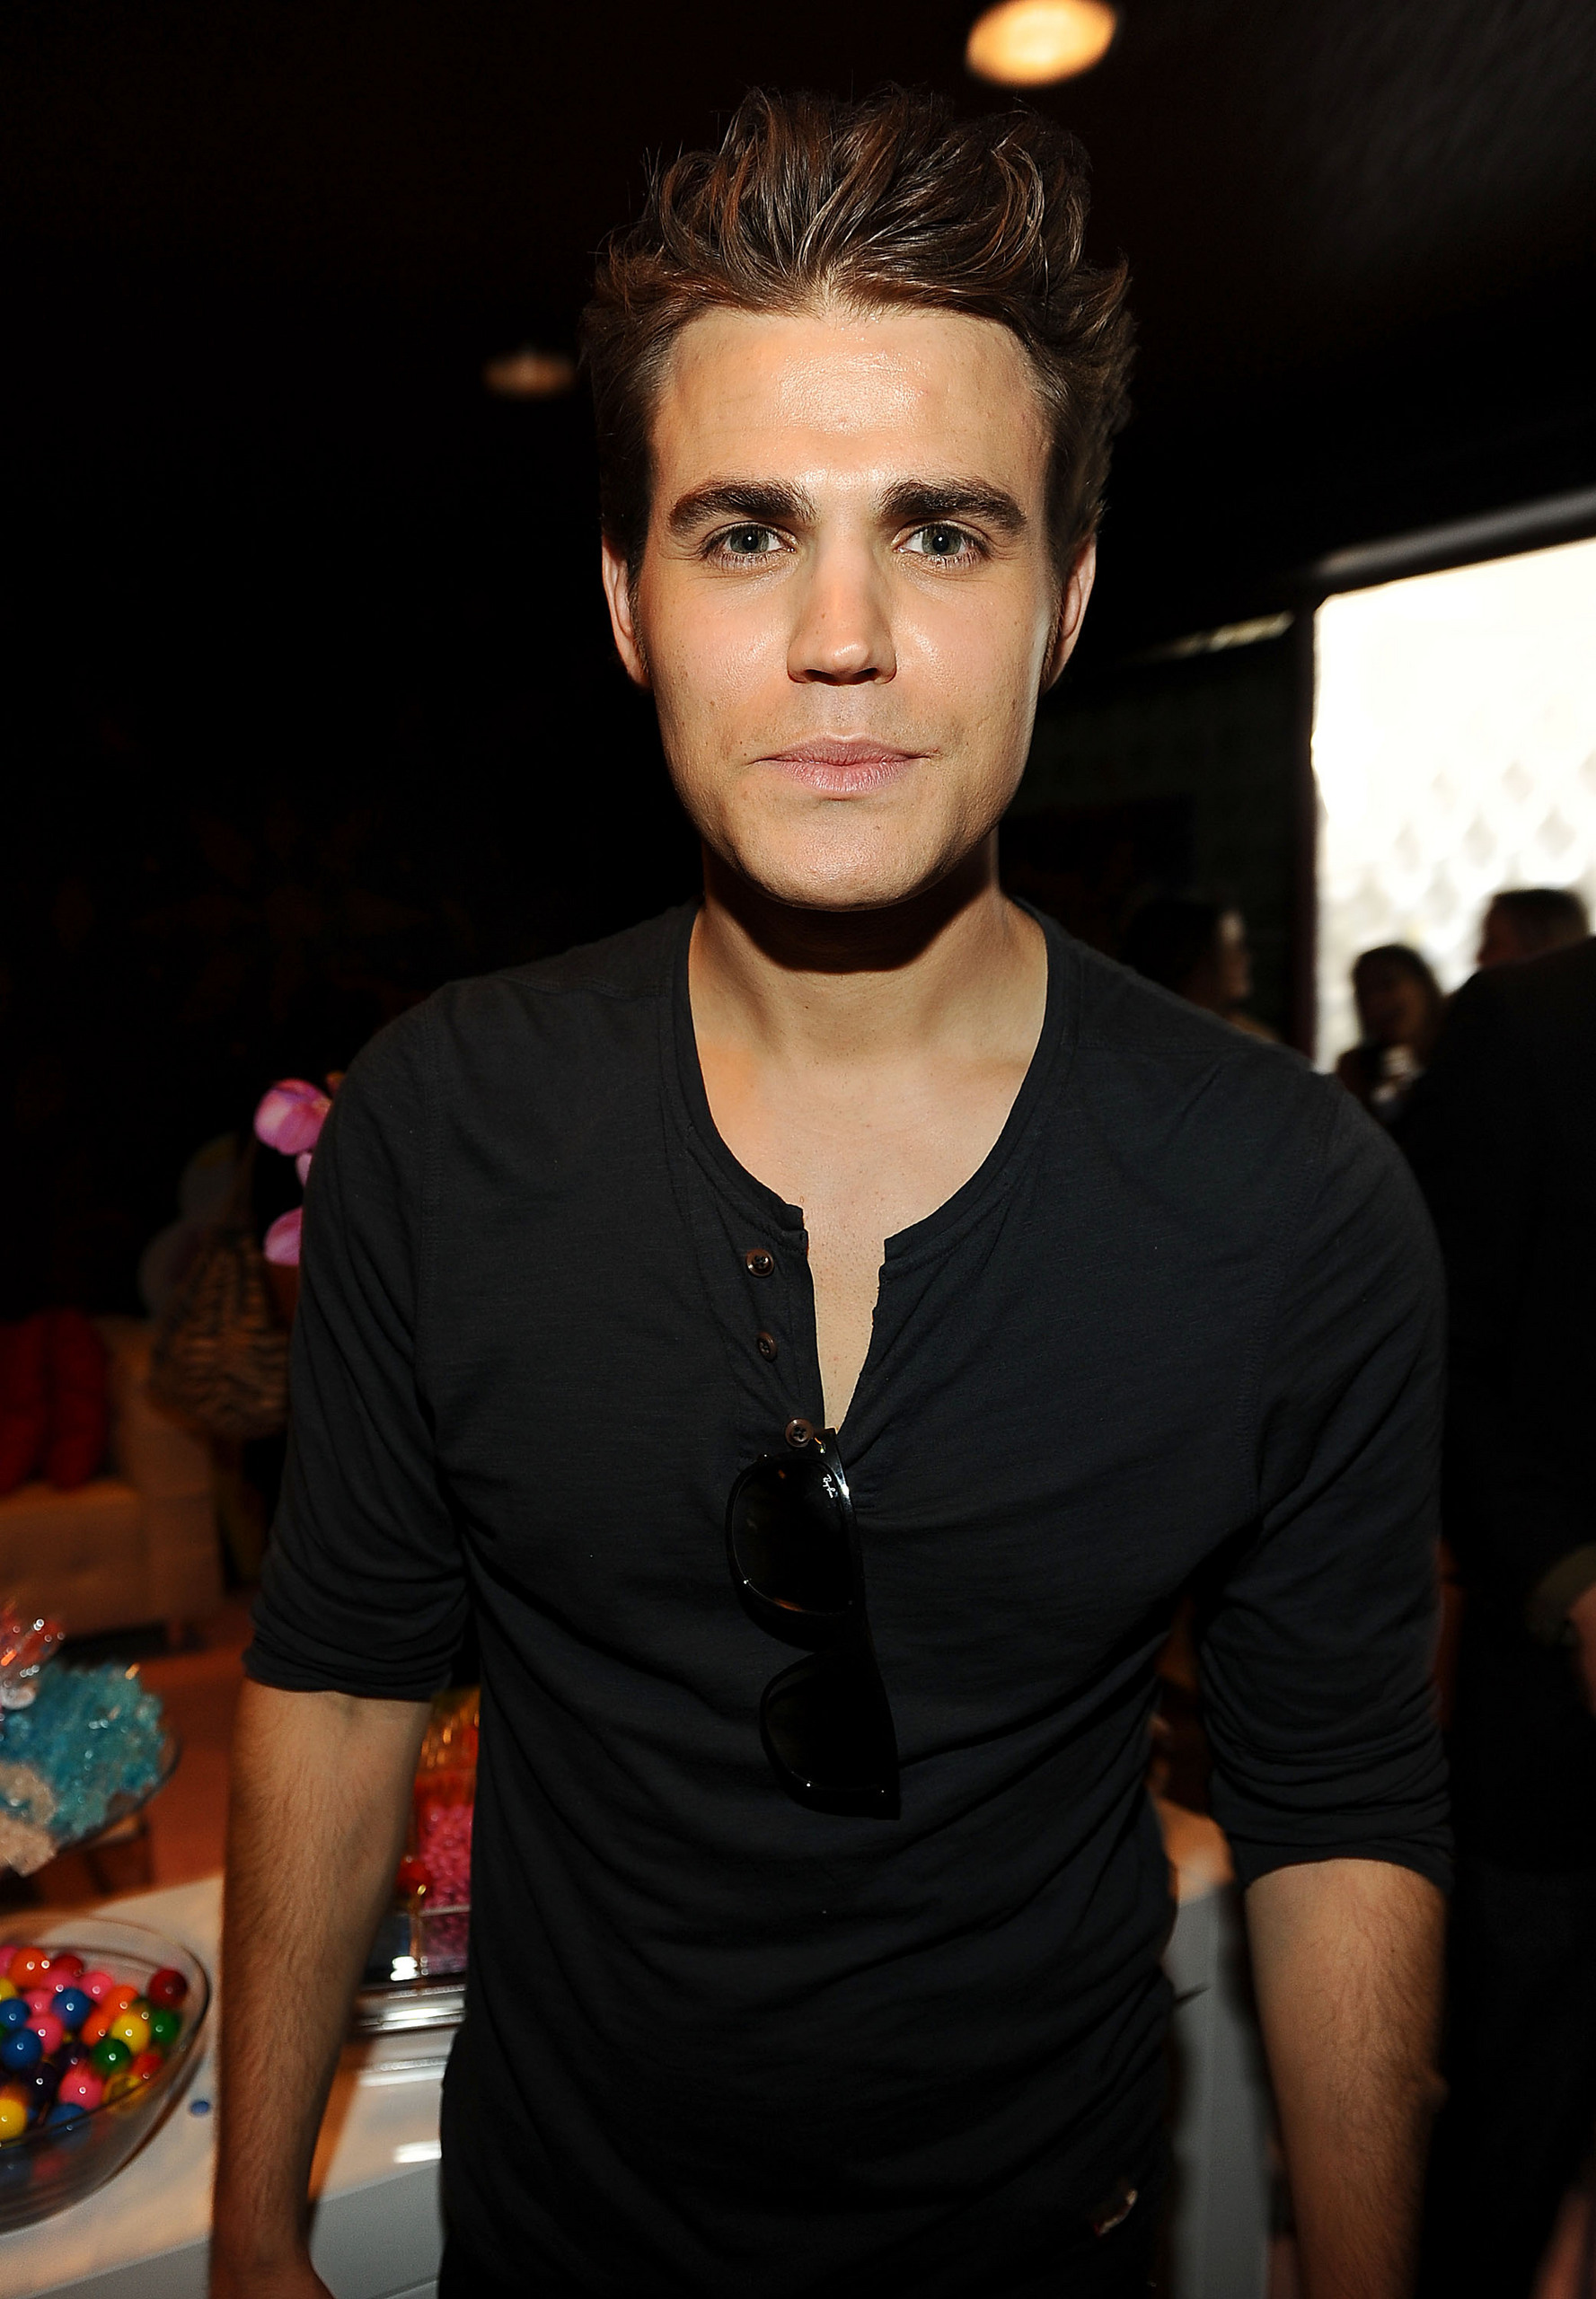 Paul at Teen Choice Awards - Green Room (July 22th, 2012)